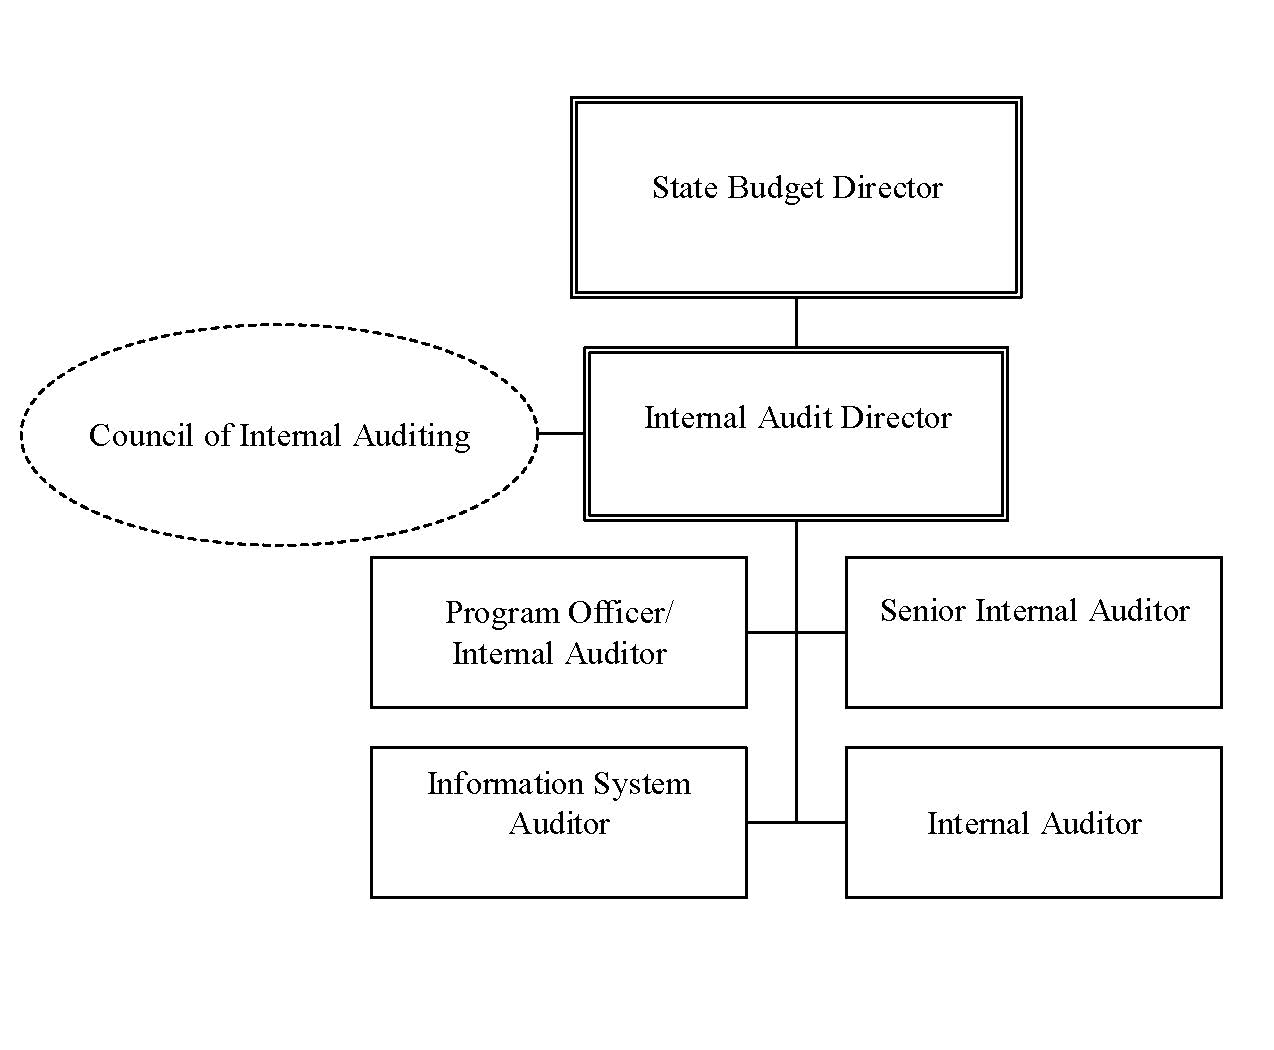 NC OSBM: Internal Audit